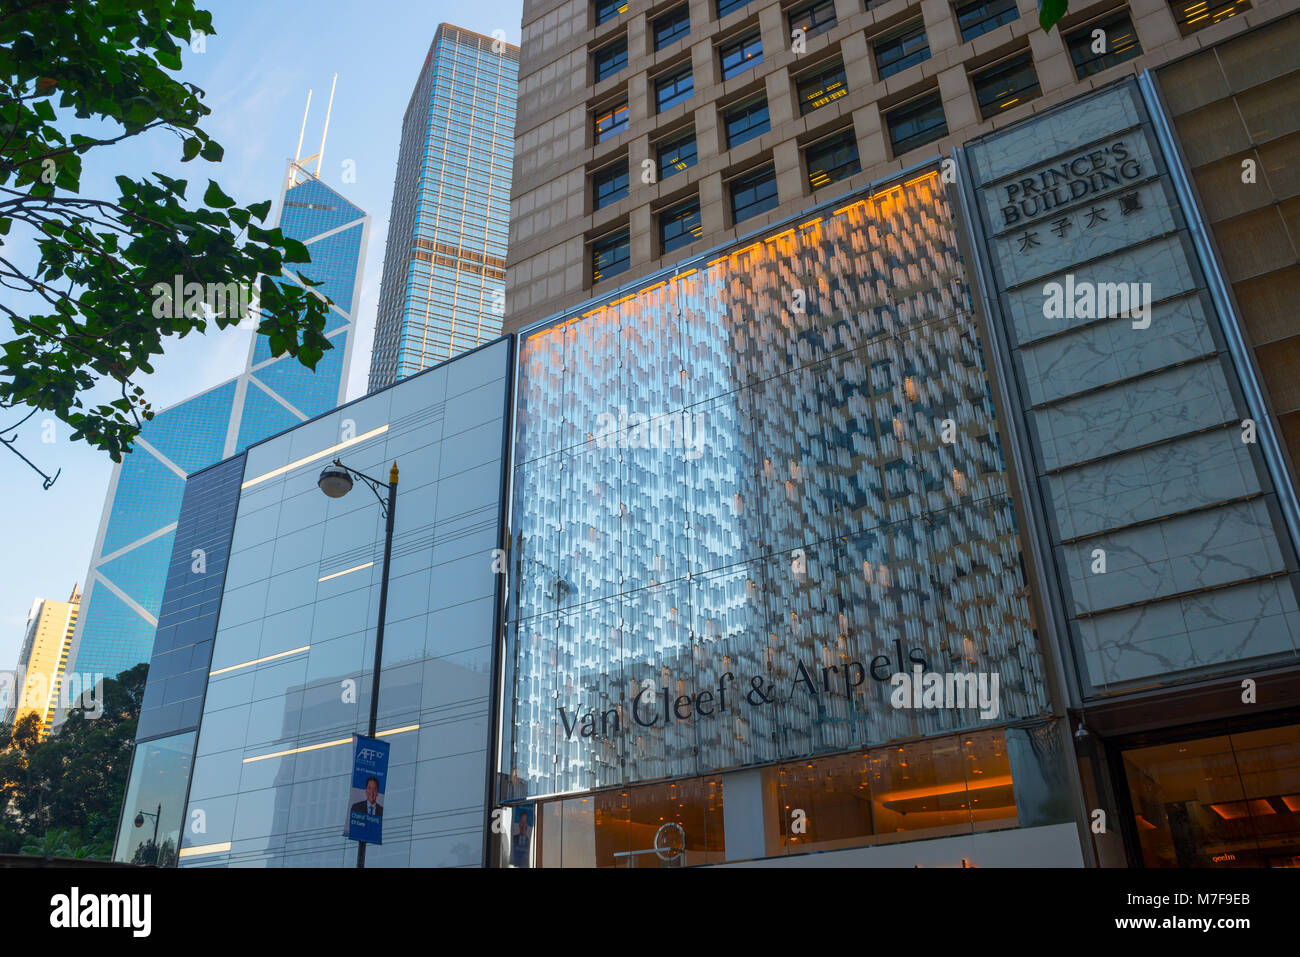 Prince's Building exterior and Van Cleef & Arpels, Hong Kong - Stock Image